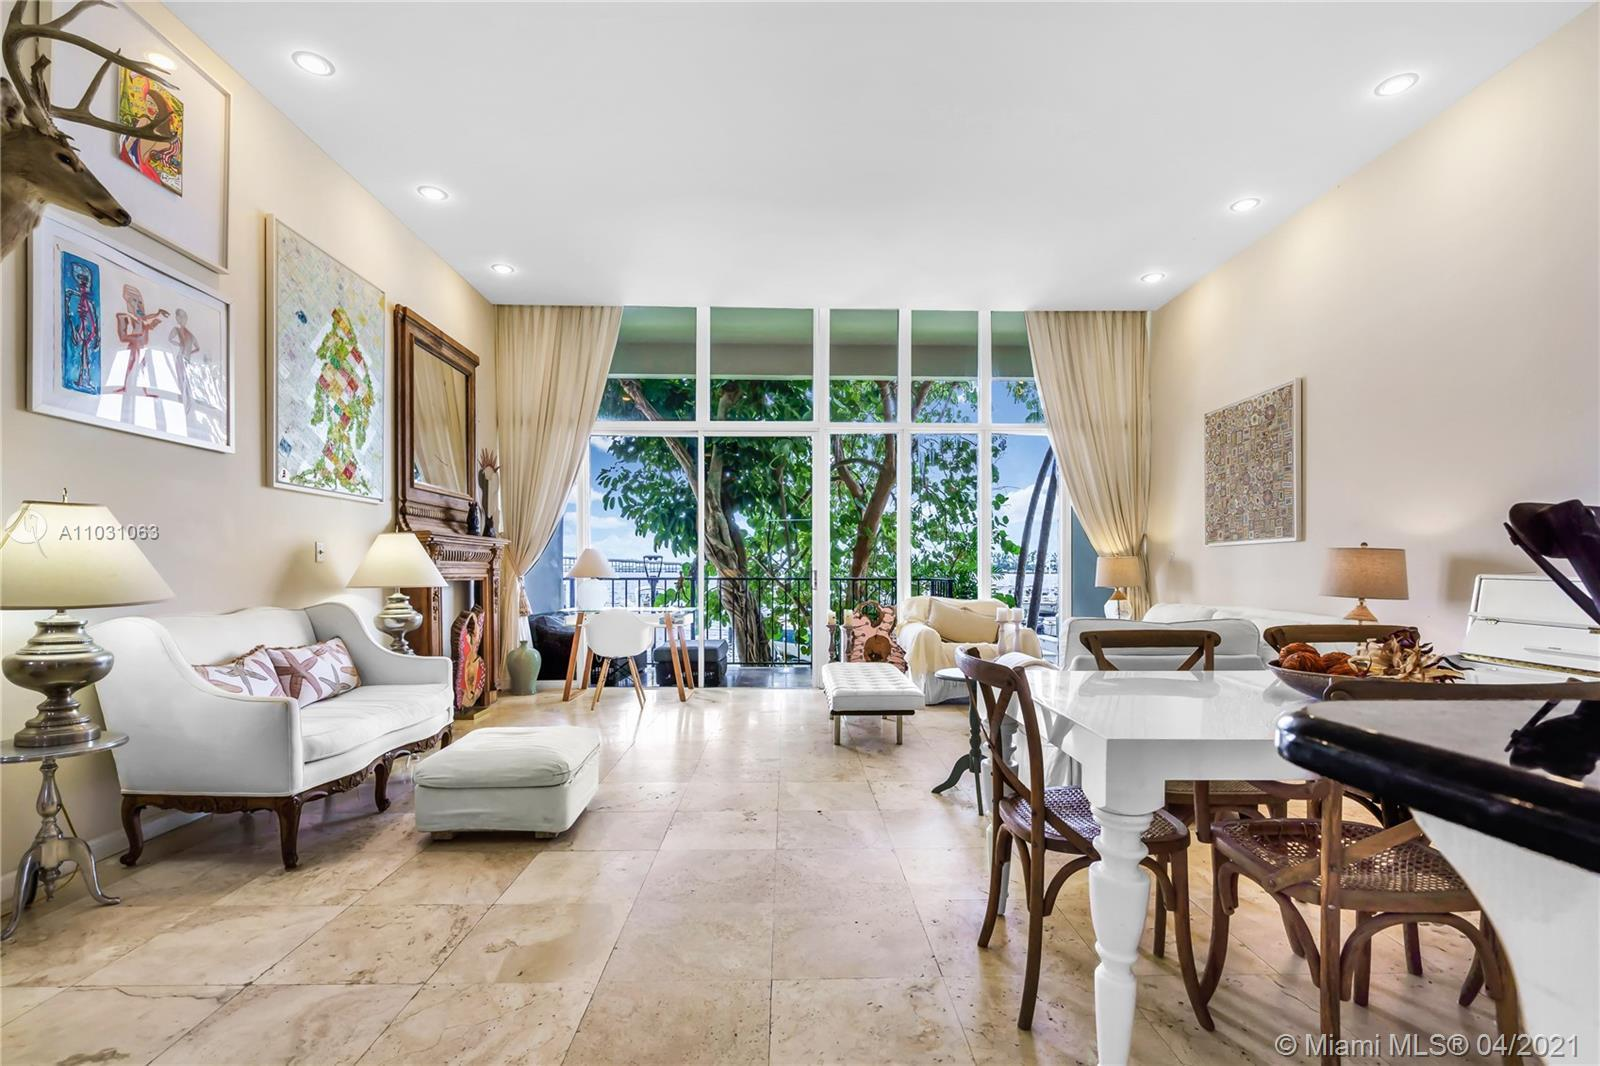 Enjoy the independence of a private home with all the comforts of a first class secured condominium